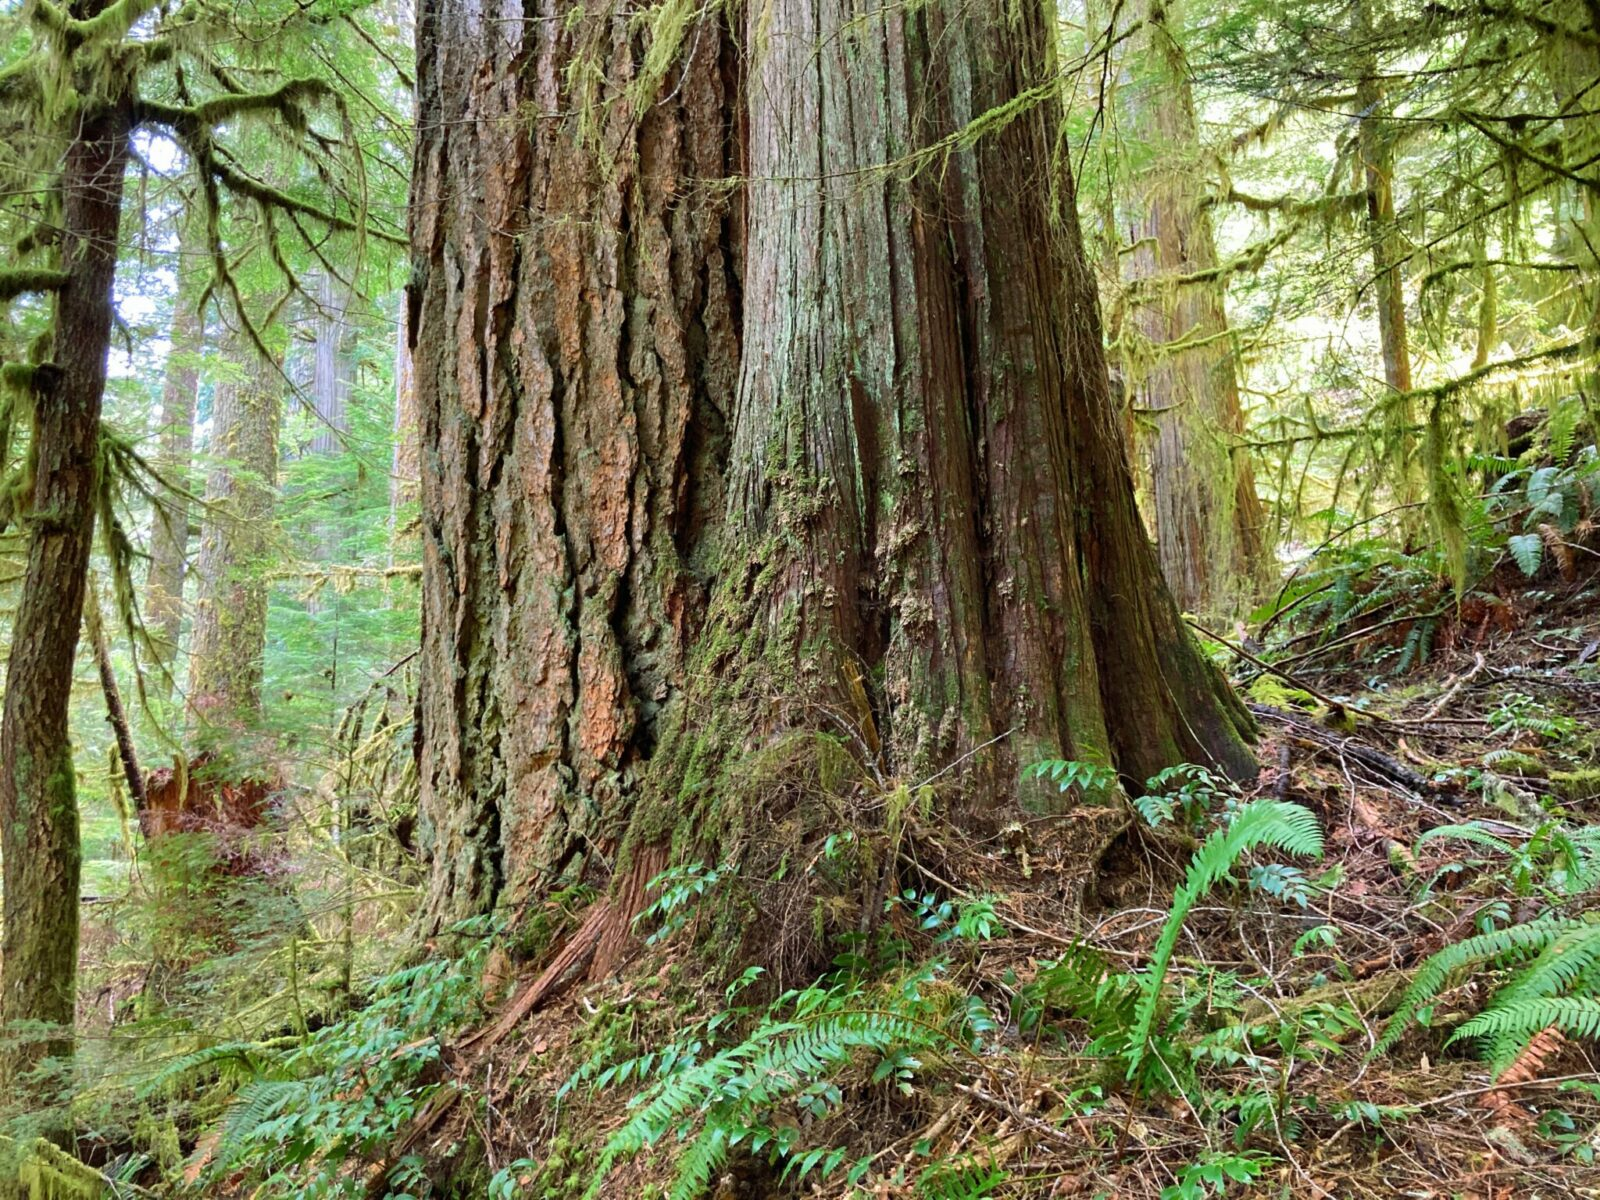 Two old growth trees in a forest surrounded by moss and ferns. We can only see the bottom of each tree. The one on the right as course and cracked bark and the other has more feathery bark.